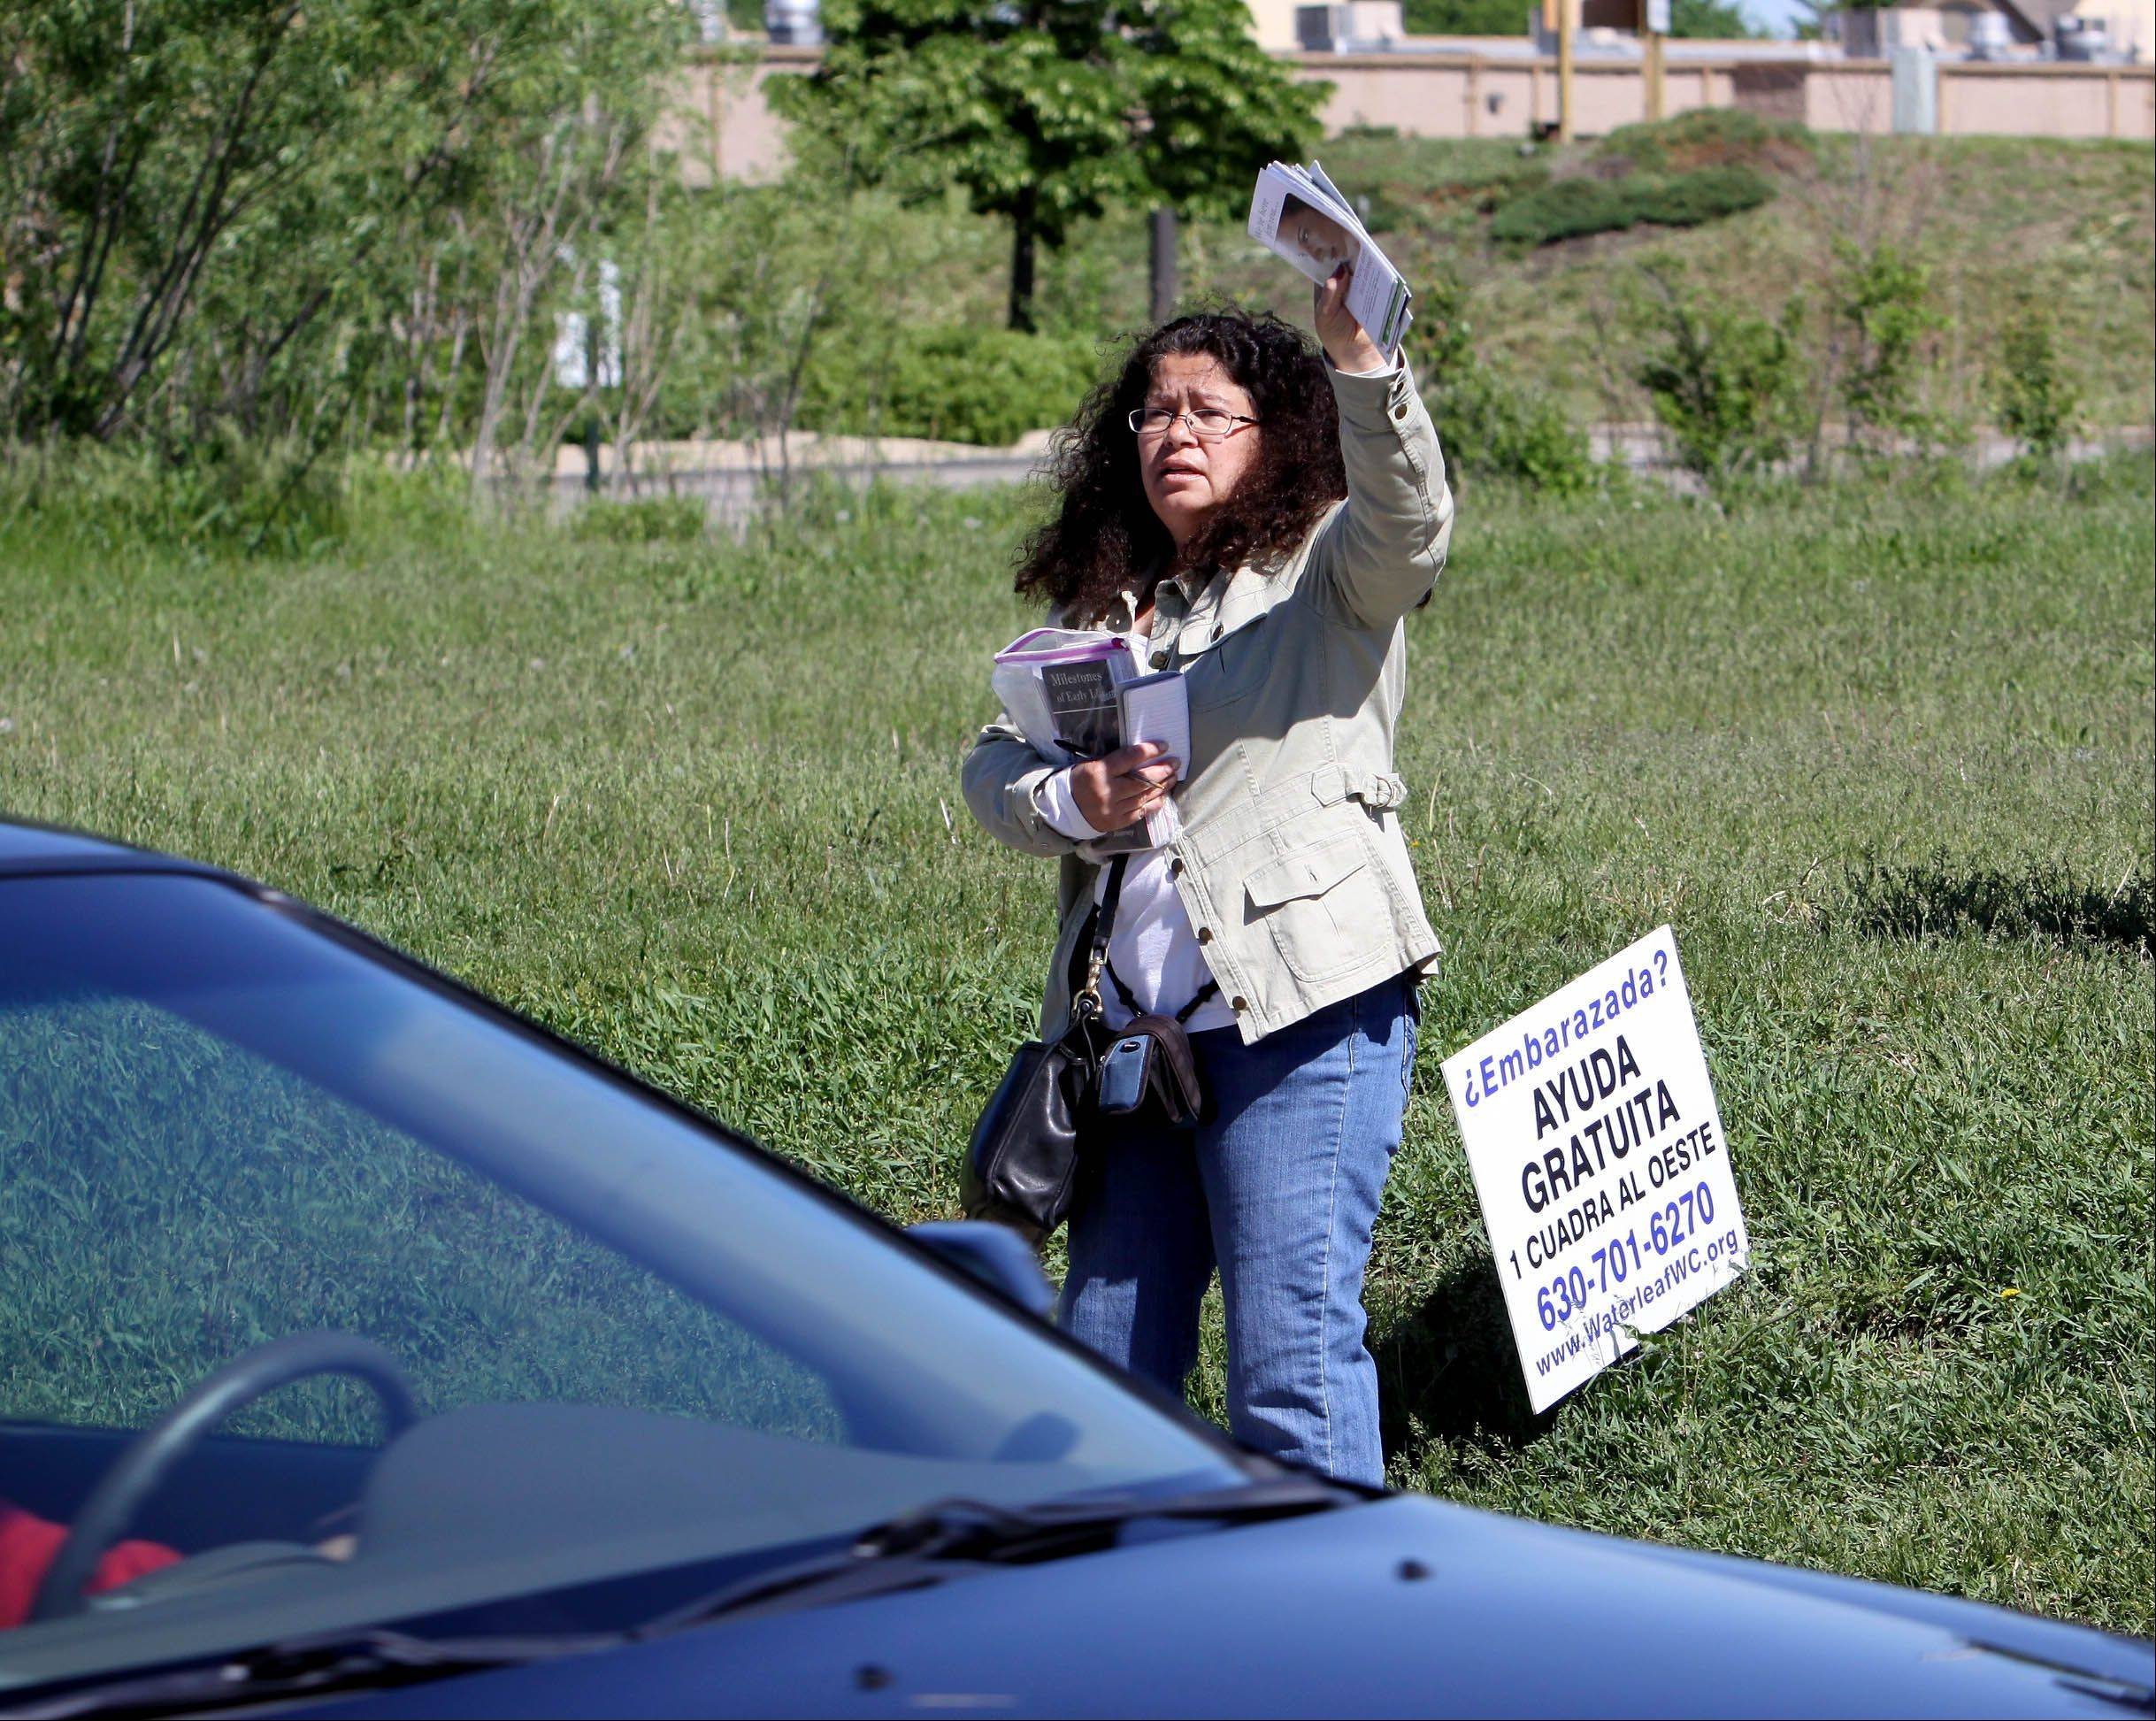 "Marie Sulita of Aurora says cars frequently swerve at her while she protests outside the Planned Parenthood clinic in Aurora. ""There are so many times that happens,"" she said, though she has never sought charges."